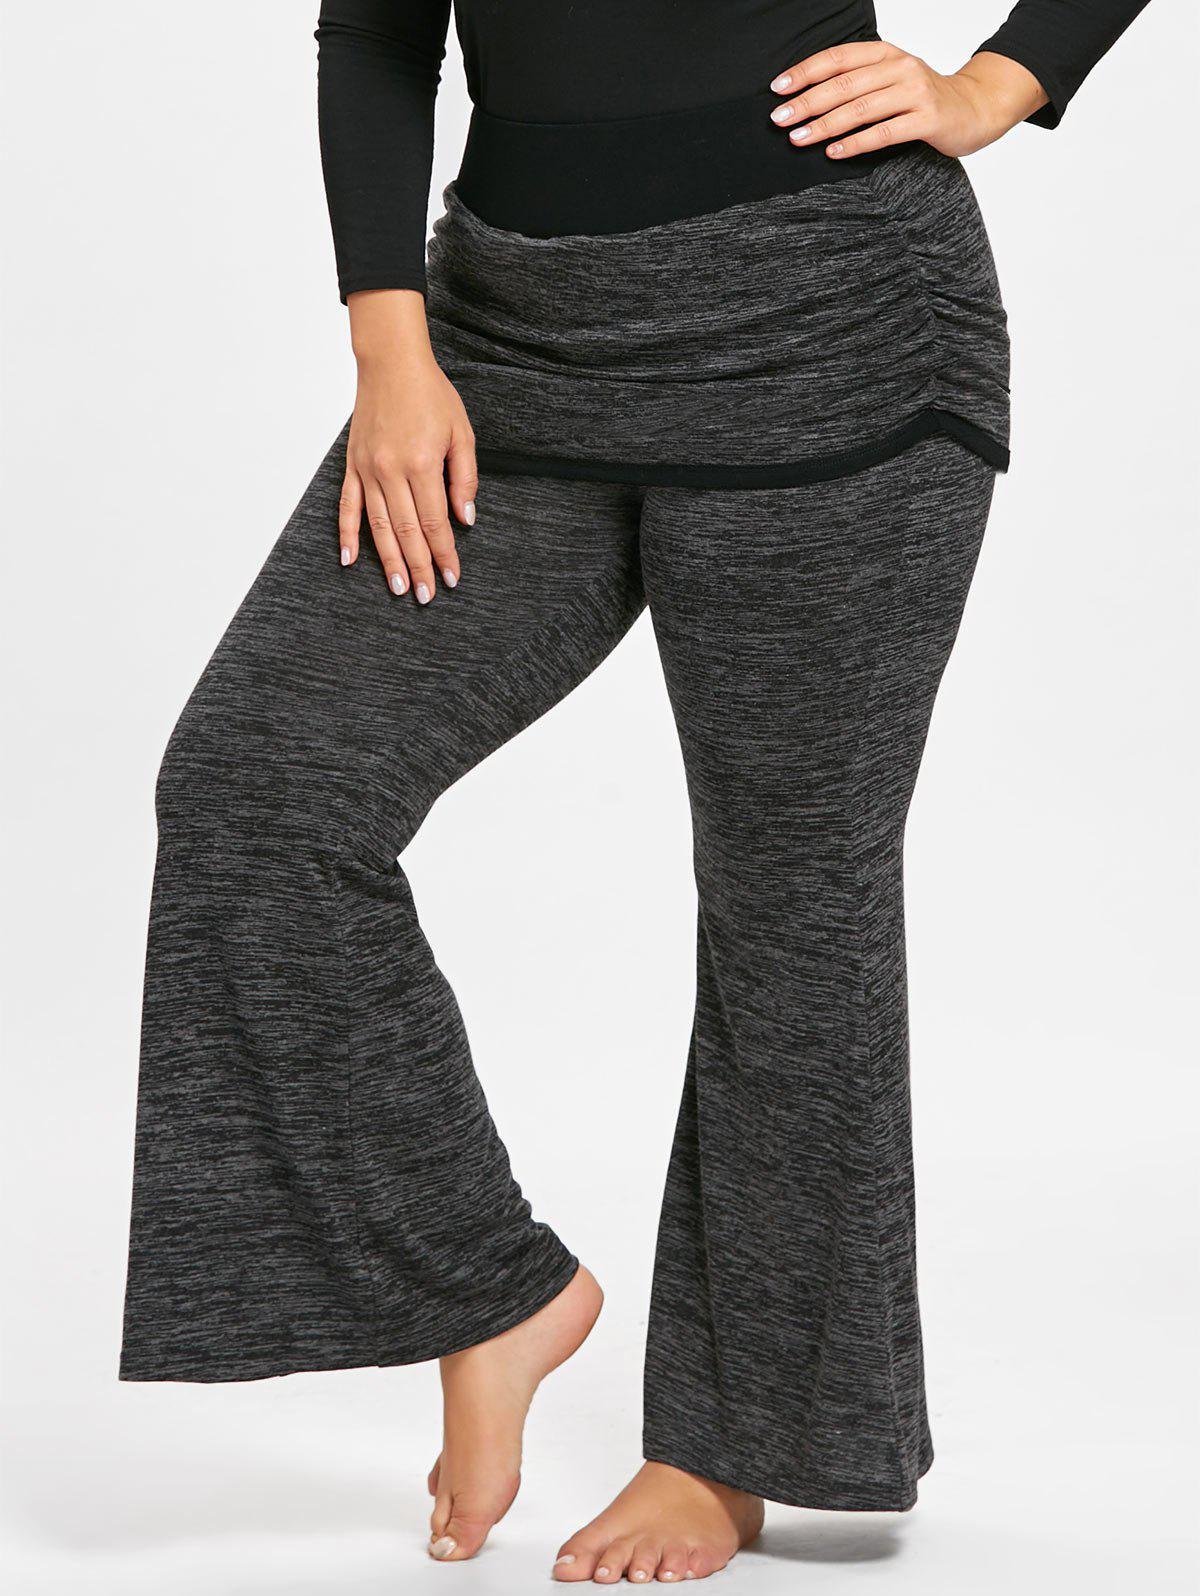 New Plus Size Marled Foldover Flare Pants